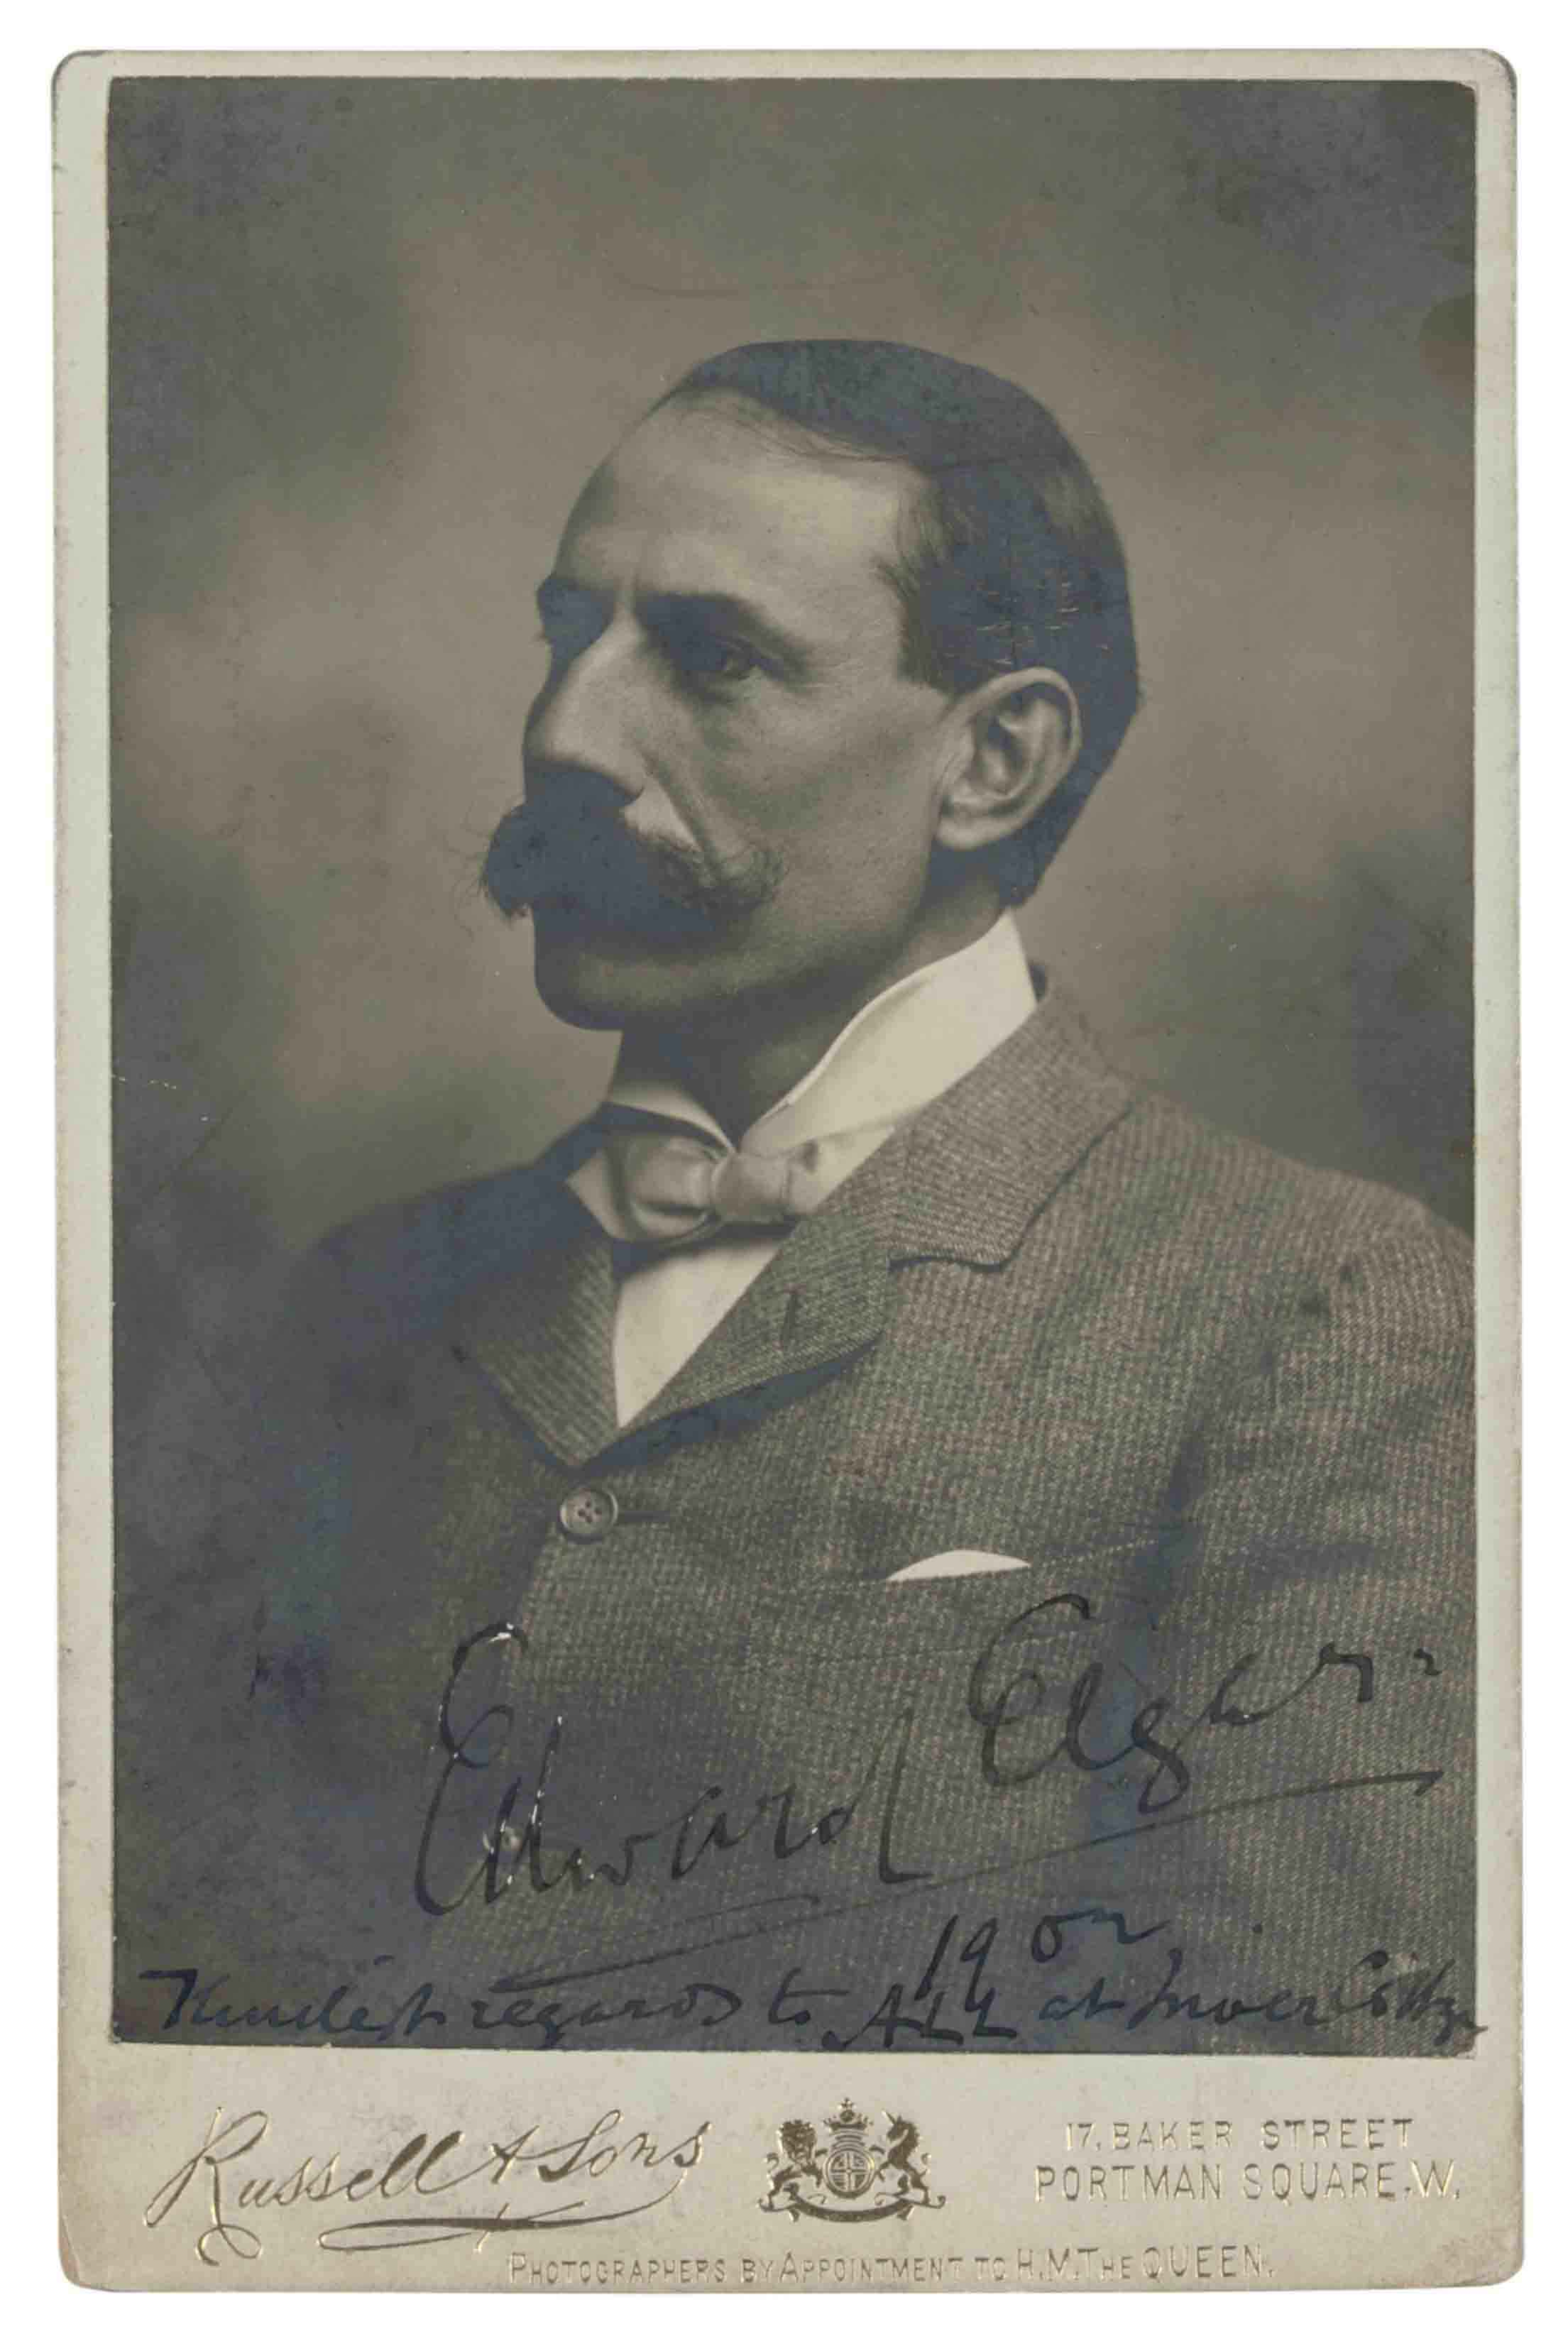 ELGAR, Edward (1857-1934). Cabinet portrait photograph signed (on the image, 'Edward Elgar'), 1902, and inscribed 'Kindest regards to ALL at Inver Cottage', the image 145 x 100mm, the mount 164 x 107mm, by Russell & Sons, Baker Street, no.48008 (some oxidisation at margins).